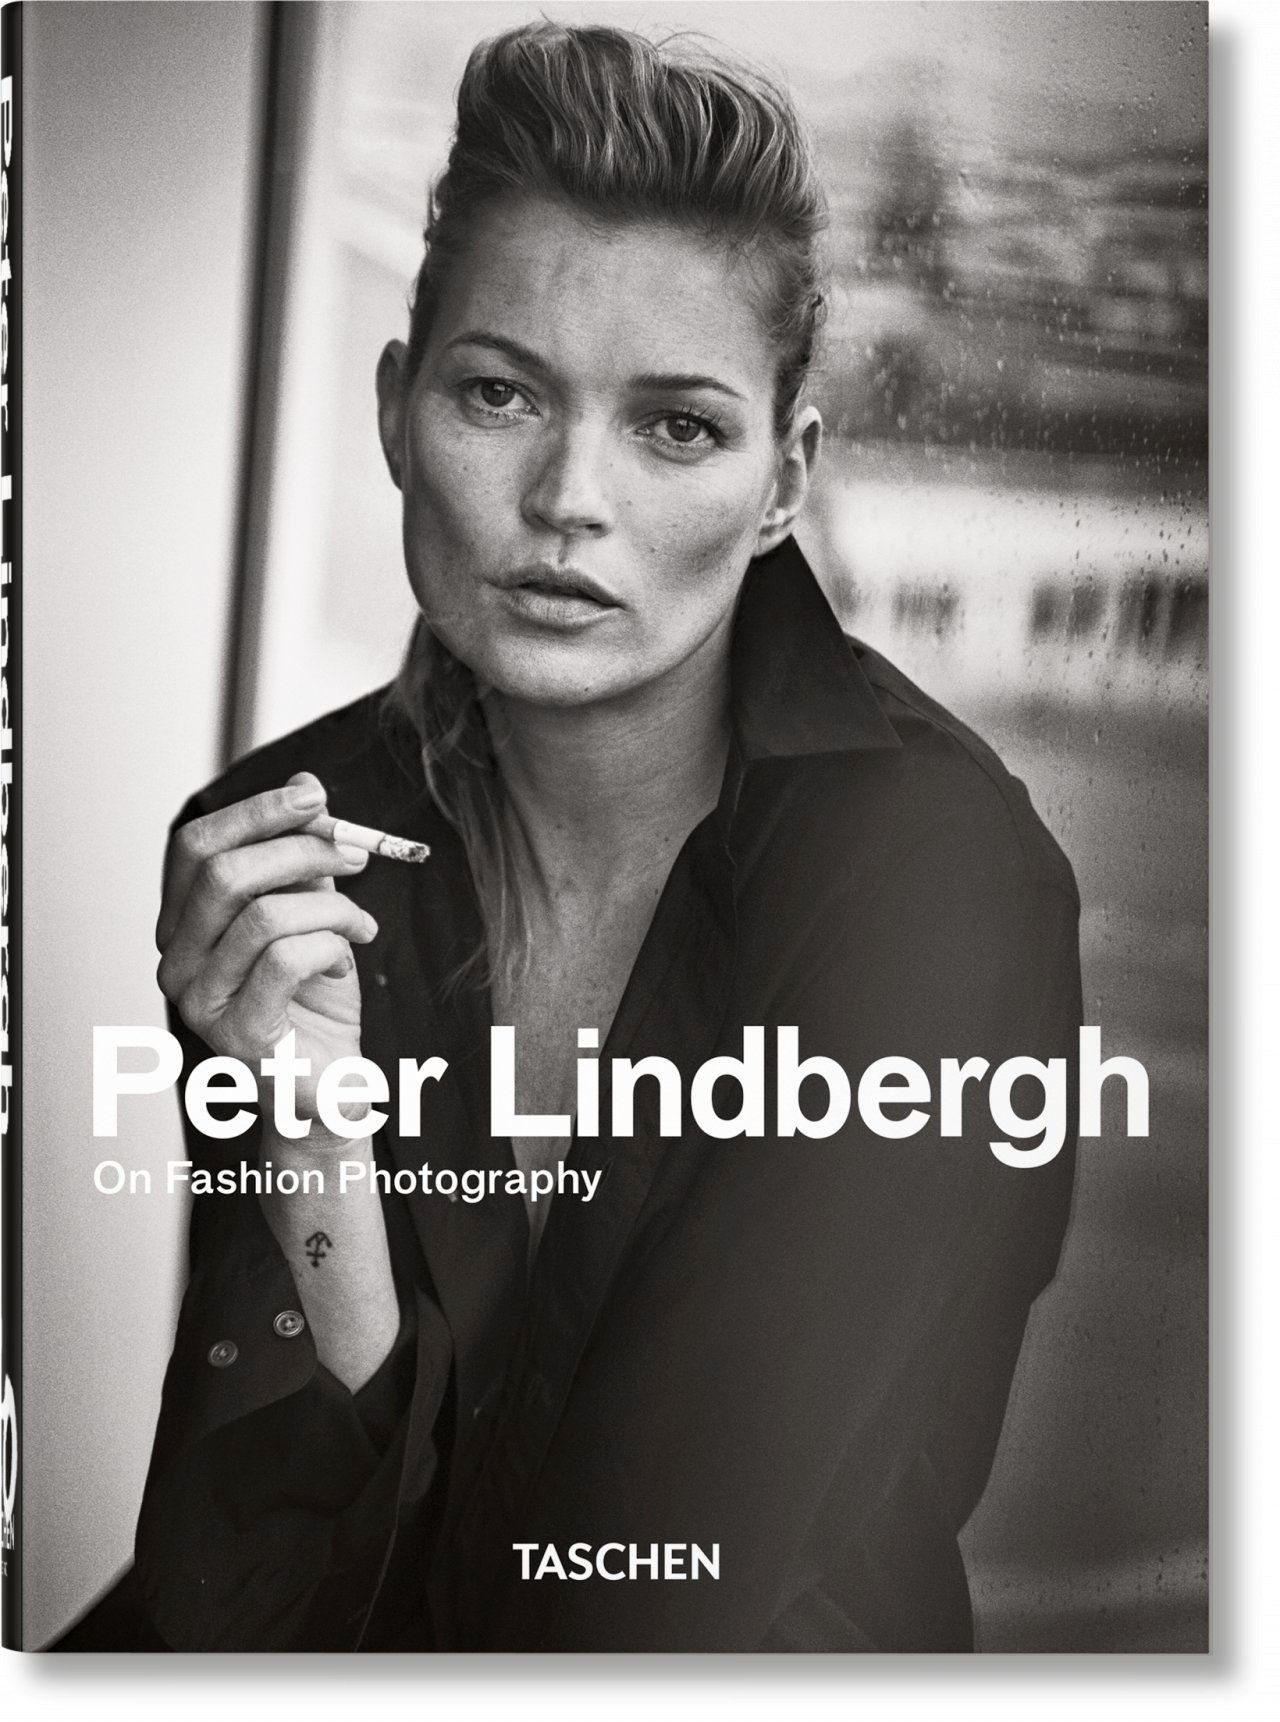 PETER LINDBERGH ON FASHION PHOTOGRAPHY – 40TH ANNIVERSARY EDITION